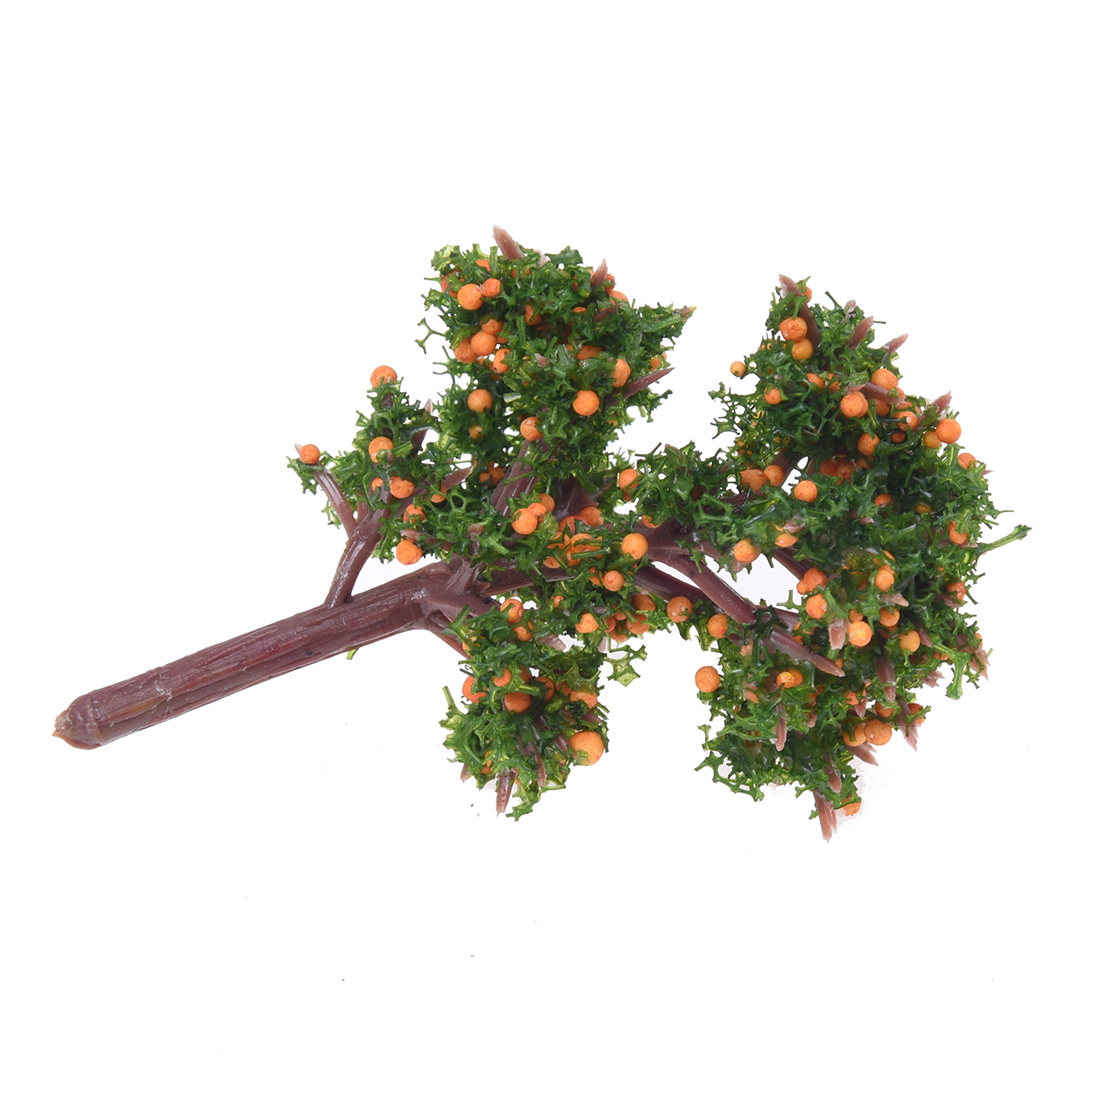 Miniature Emulation Orange Tree Moss Bonsai Micro Landscape DIY Craft Garden Ornament